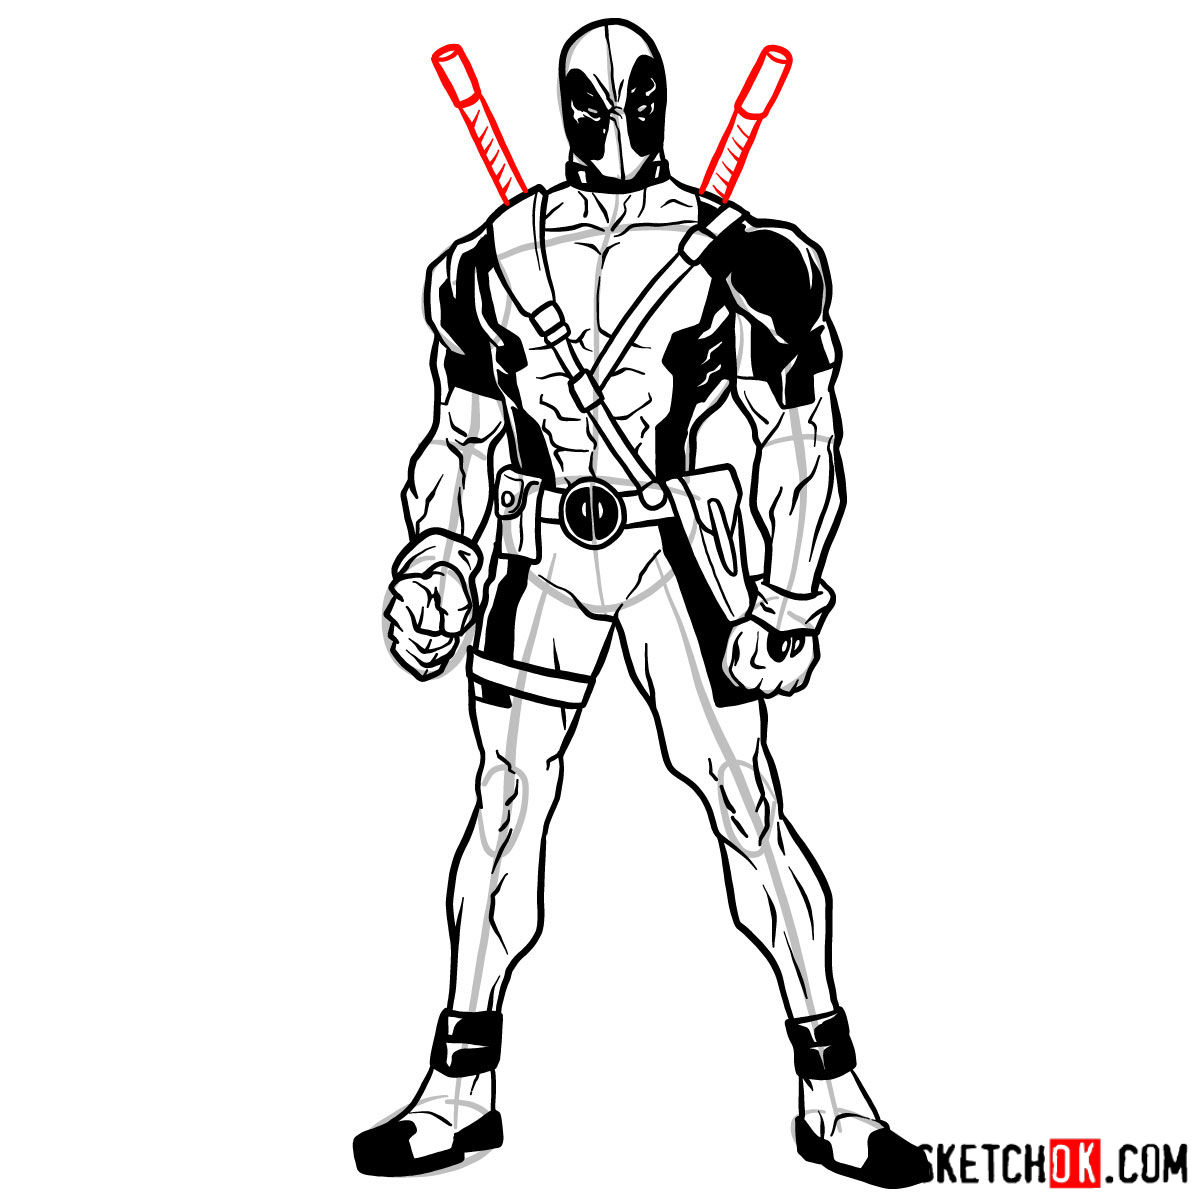 How To Draw Deadpool In Full Growth Sketchok